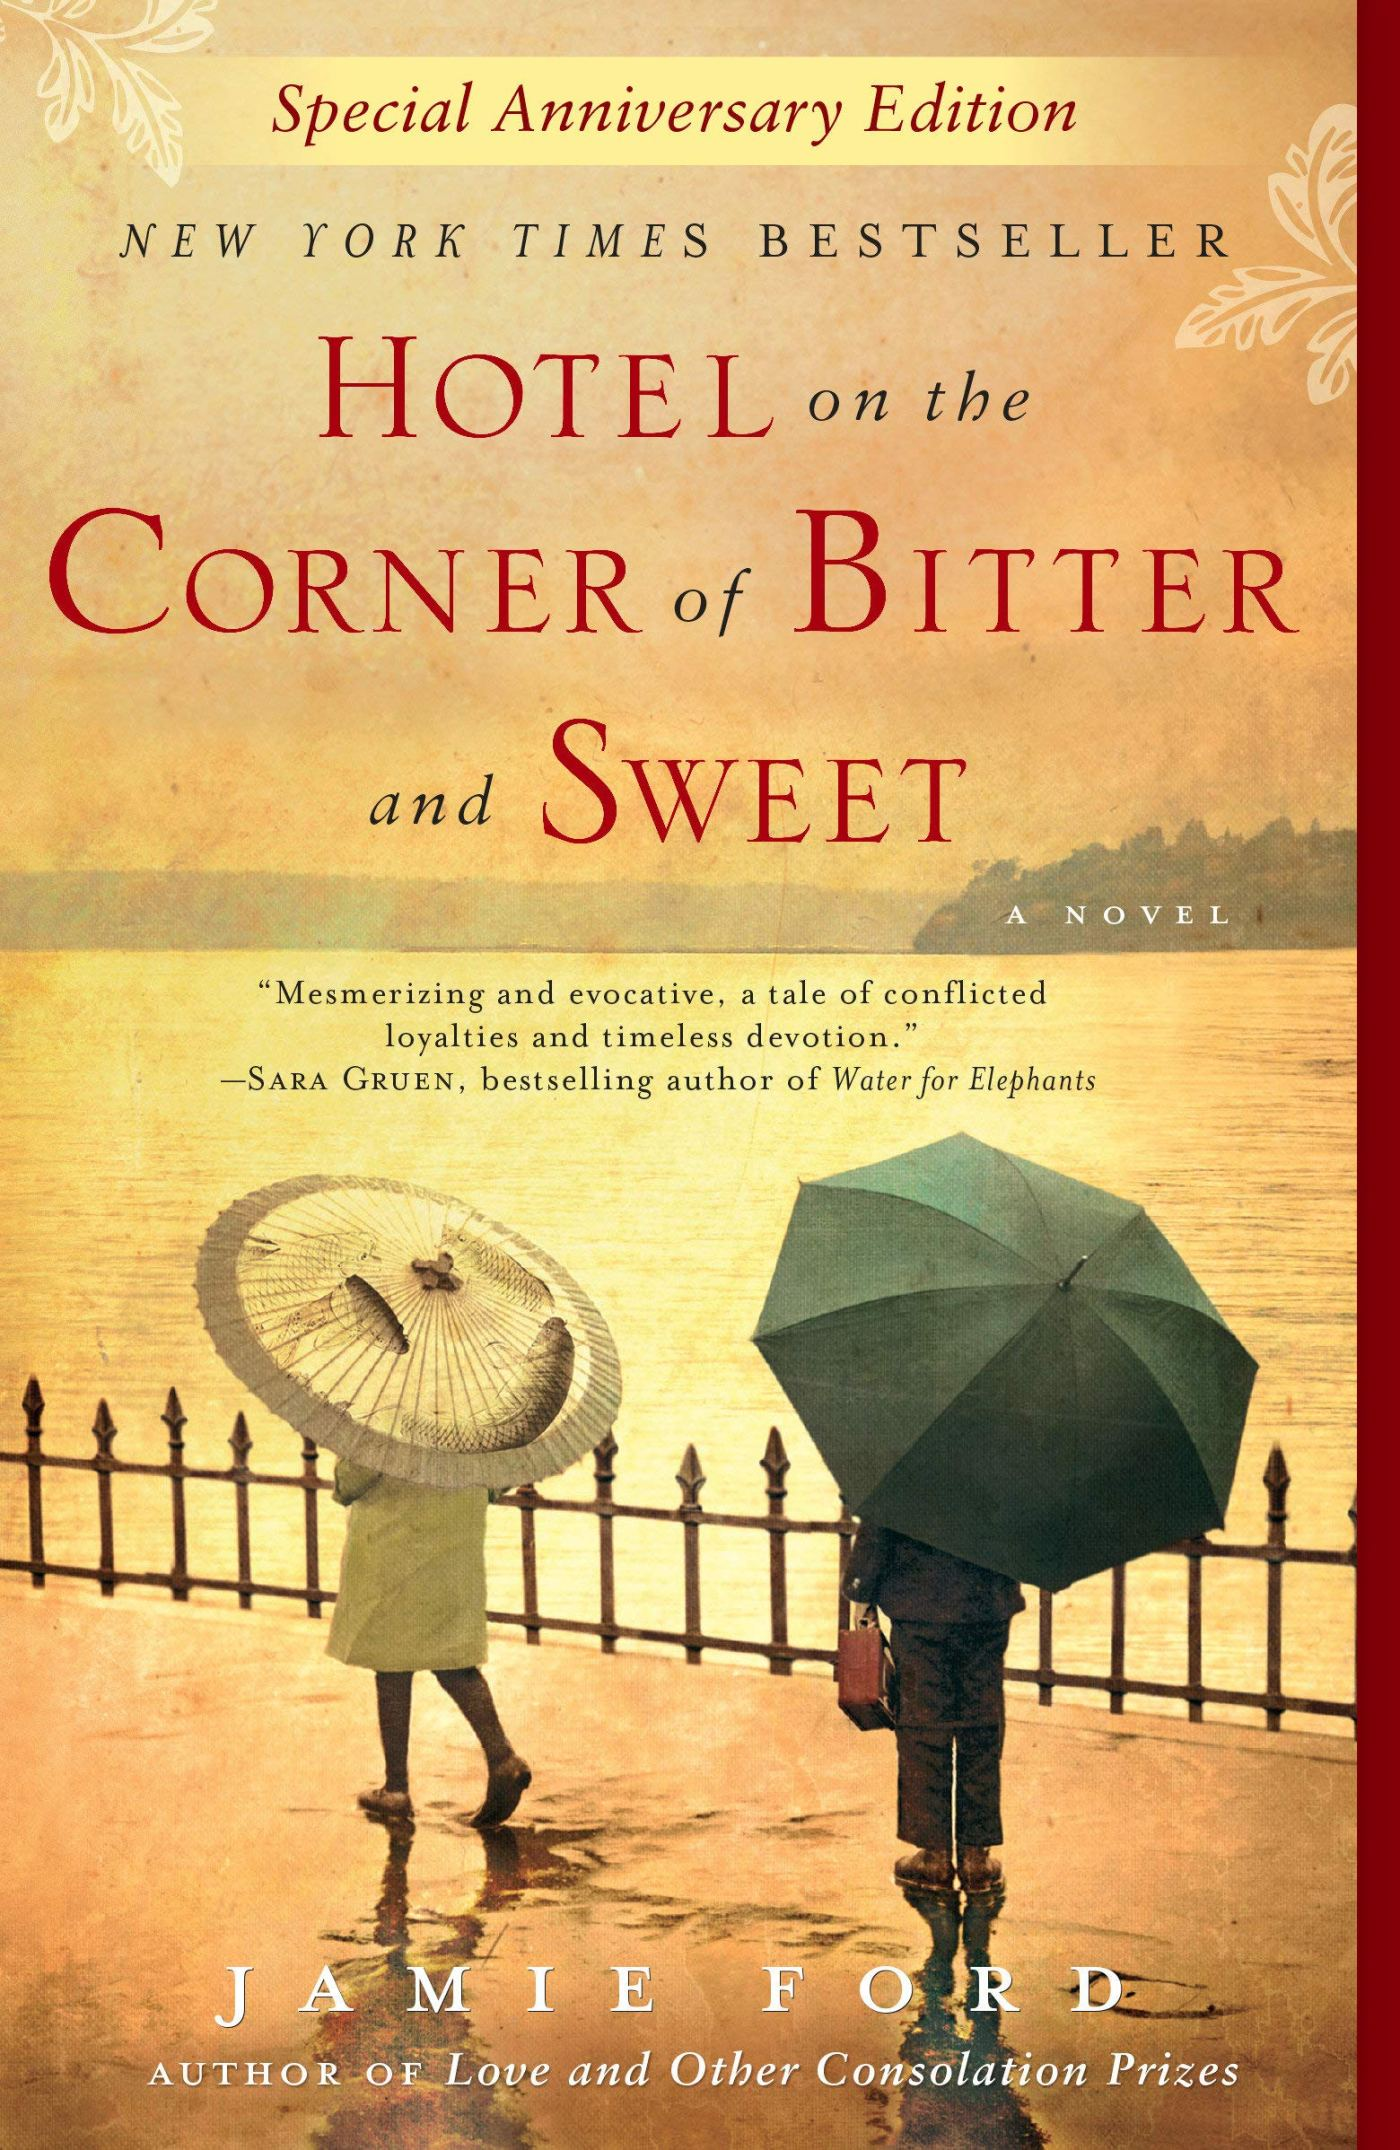 Jamie Ford - Hotel on the Corner of Bitter and Sweet